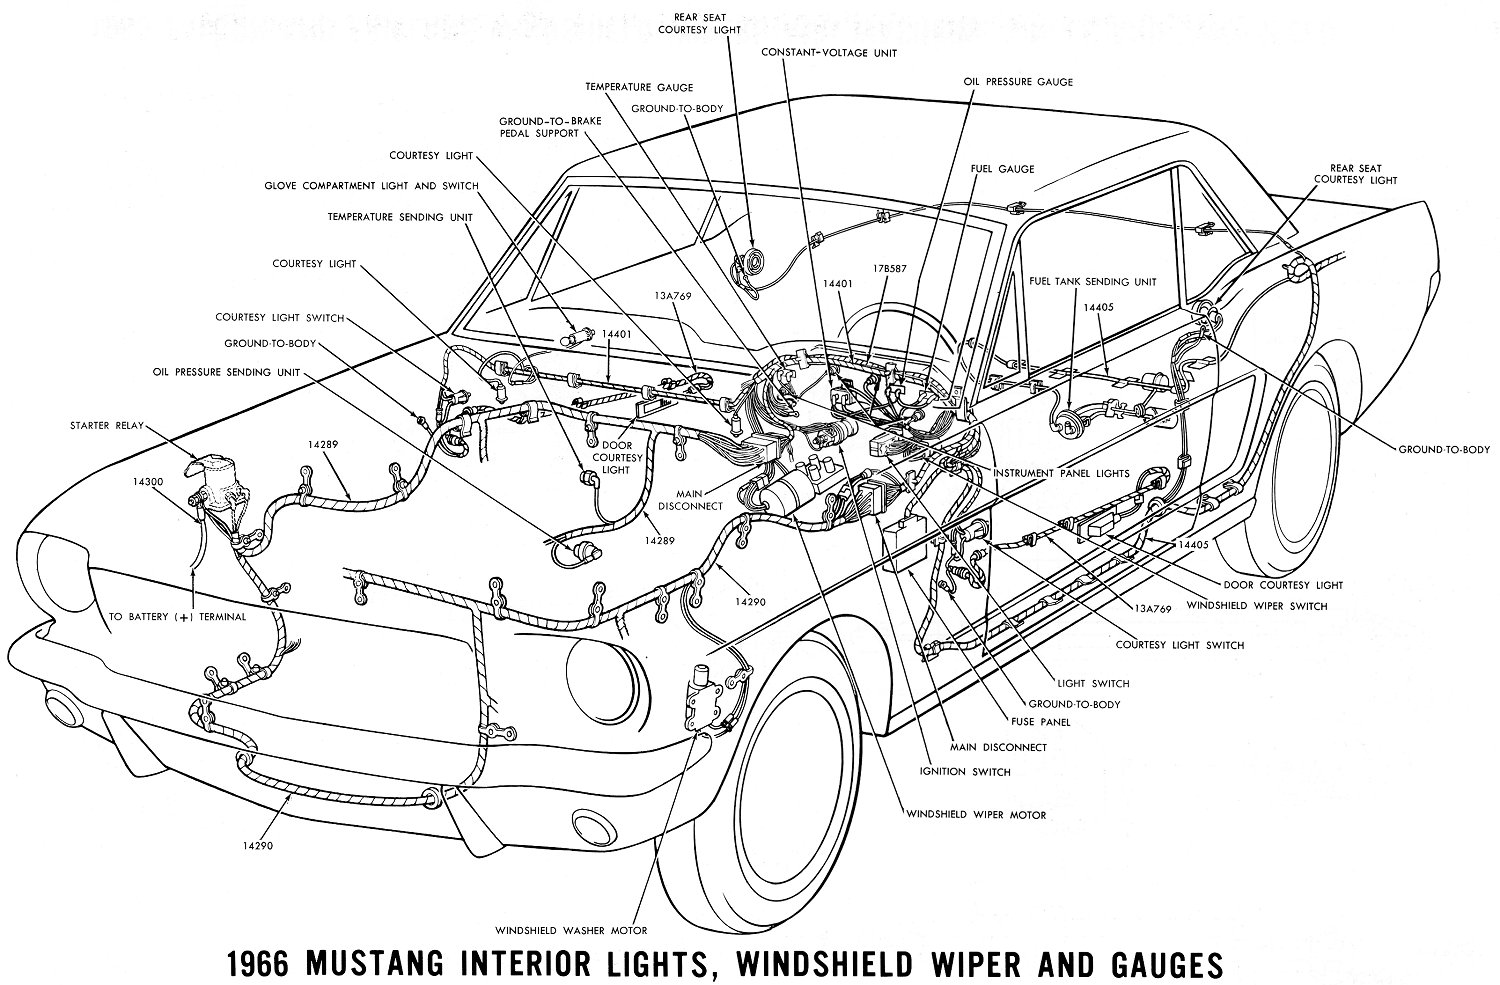 66inter 1966 mustang wiring diagrams average joe restoration 67 mustang wiring diagram at alyssarenee.co